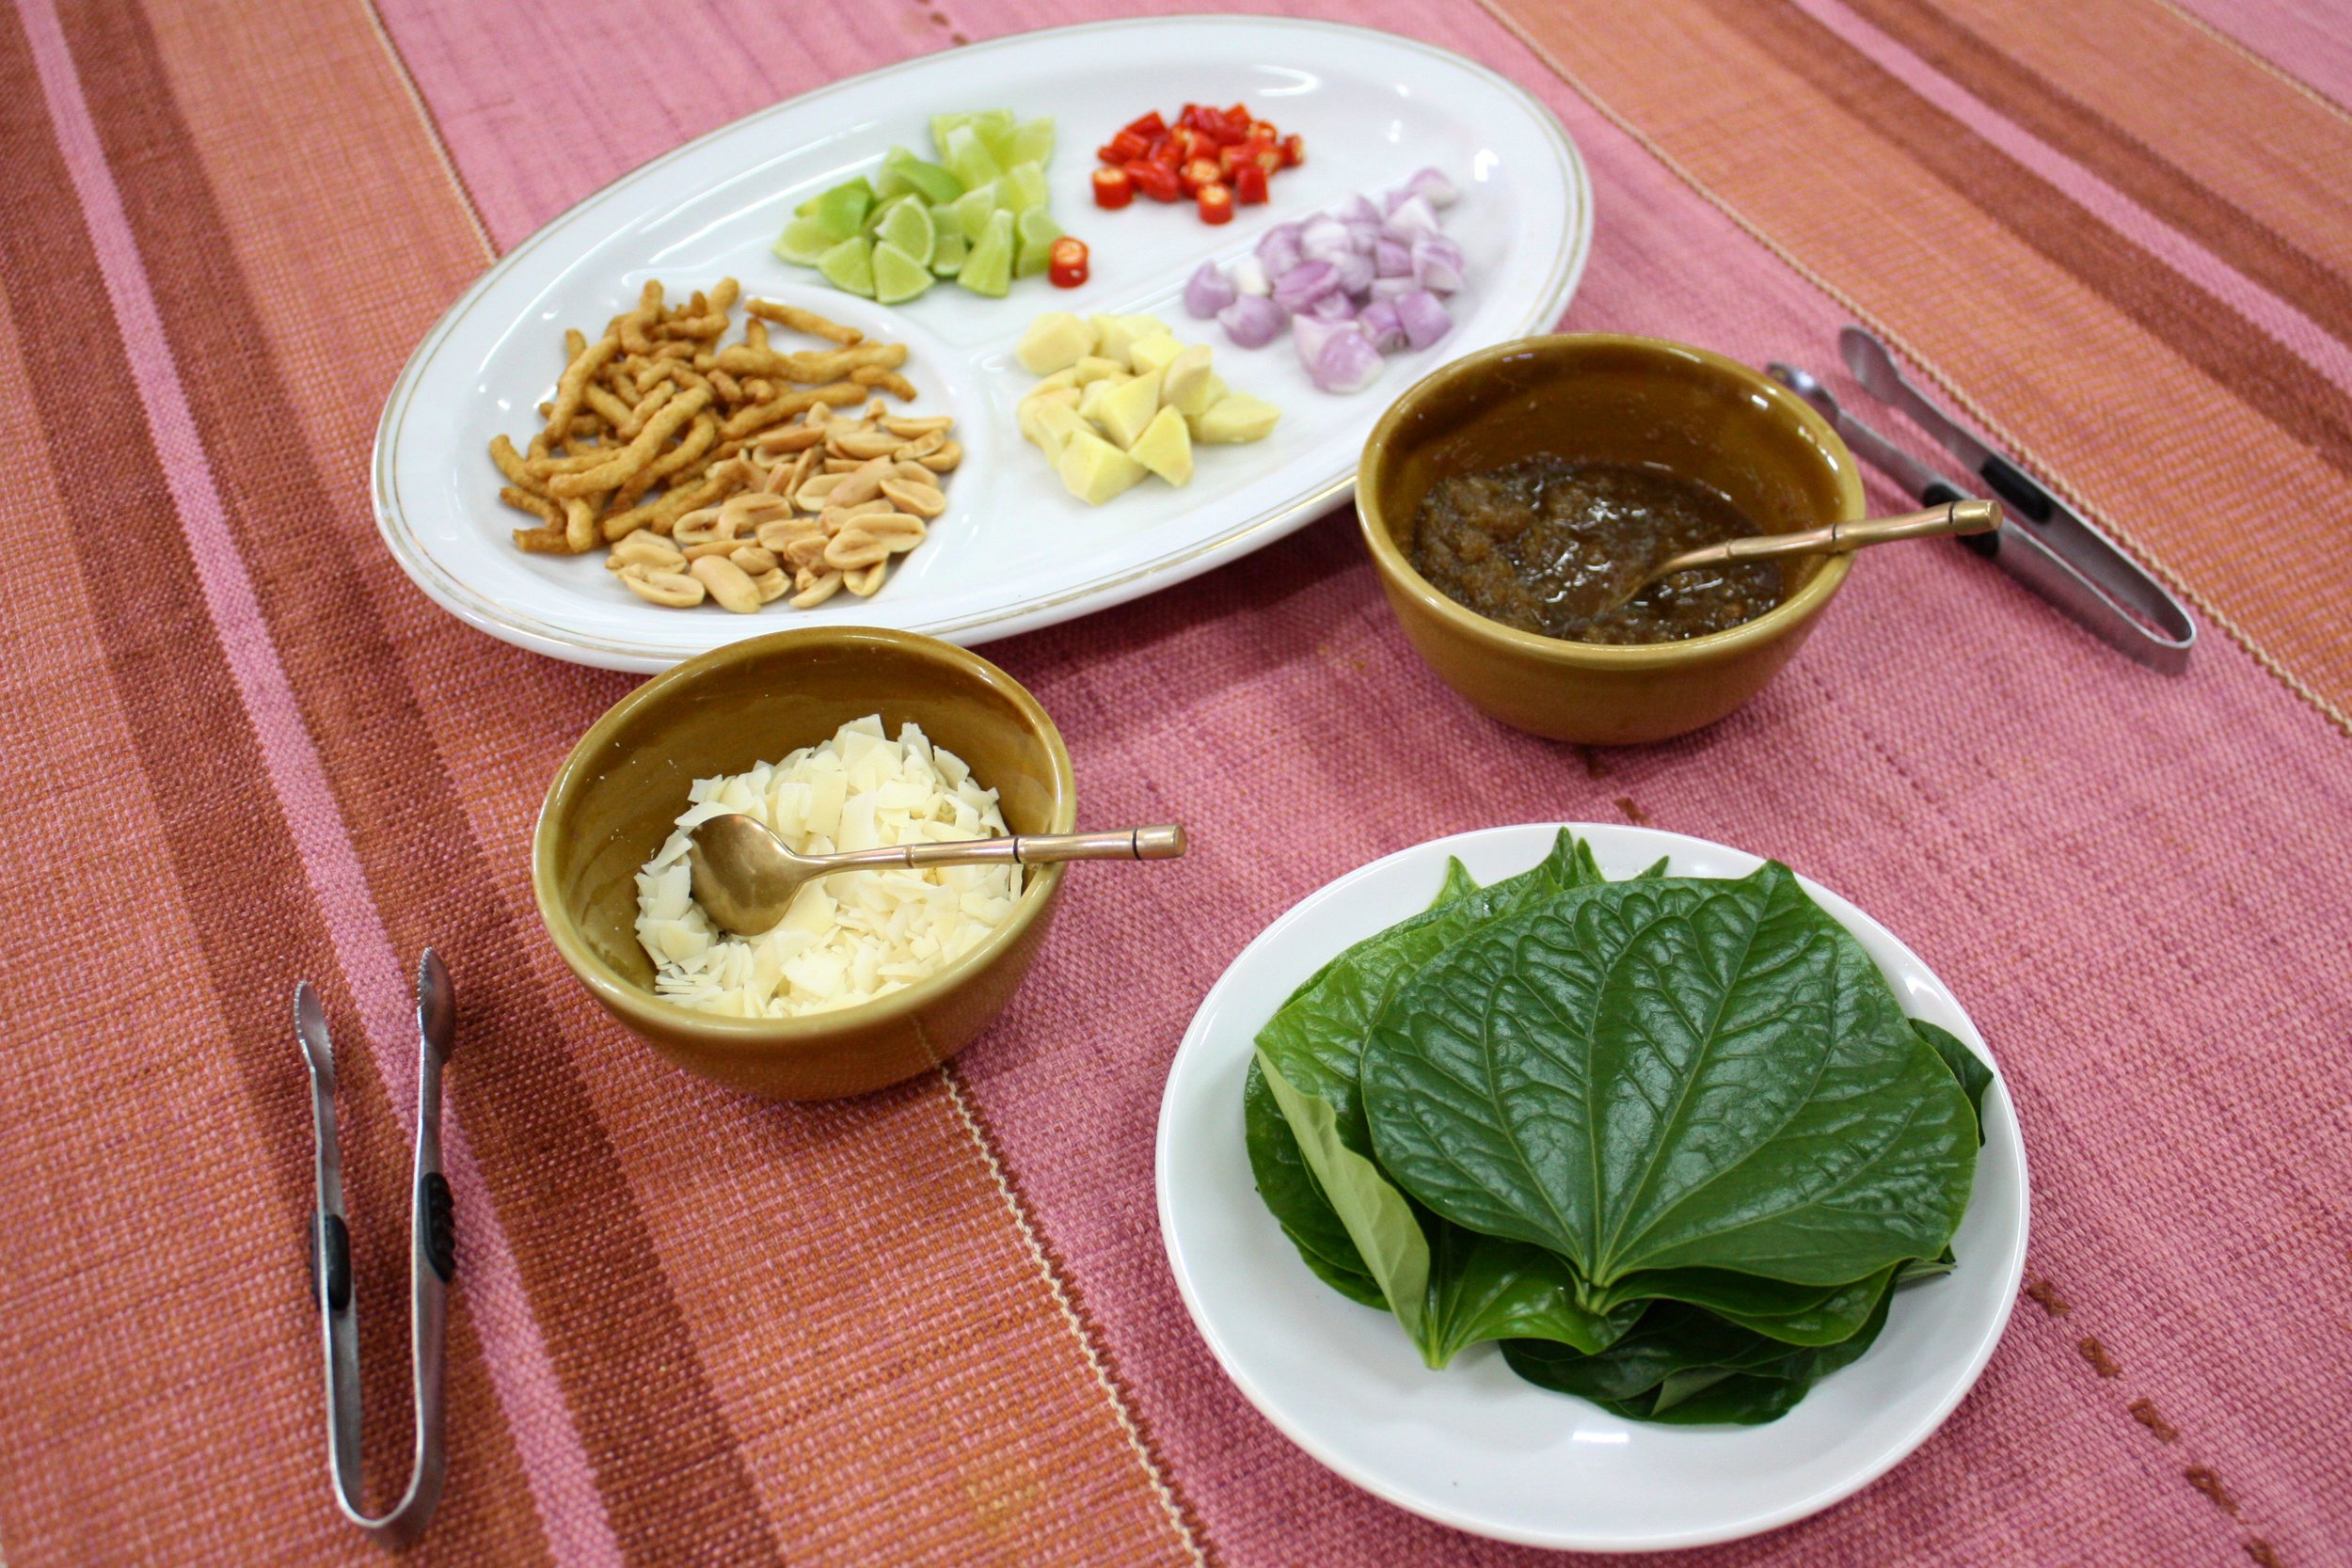 Pea welcomed us with Miang Kham, a popular Thai snack.